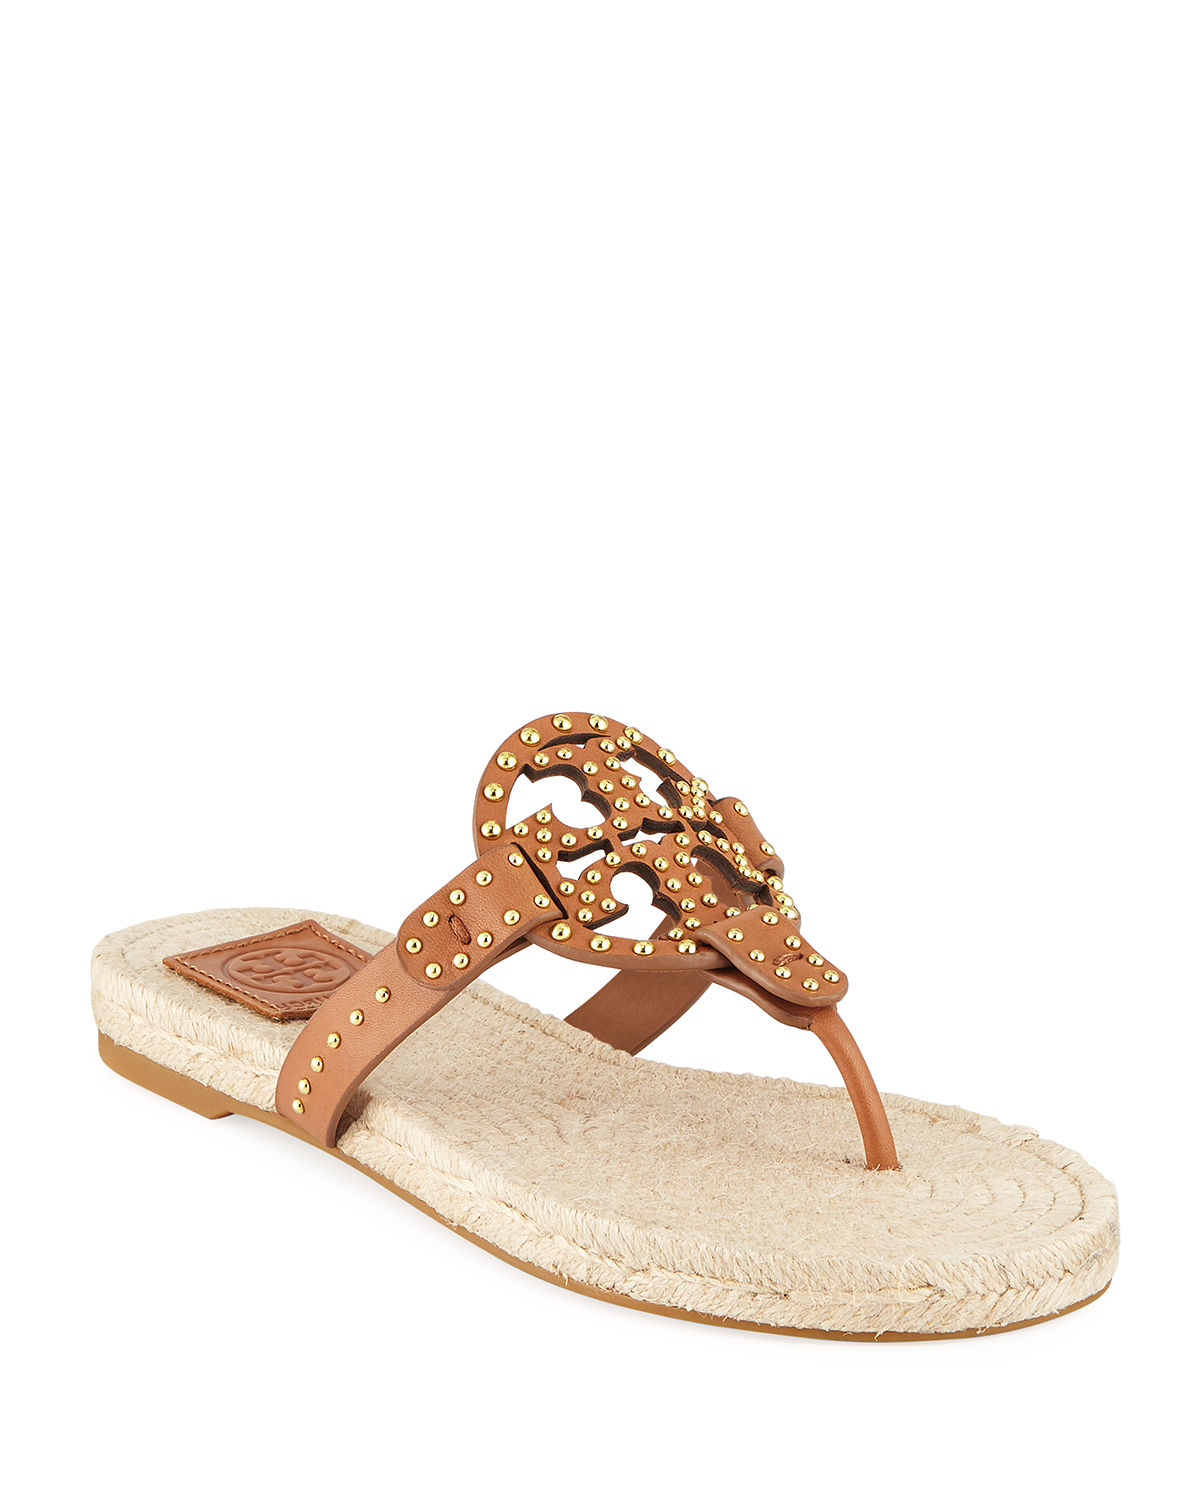 55a565525f414 Tory Burch Miller Studded Leather Espadrille Sandals